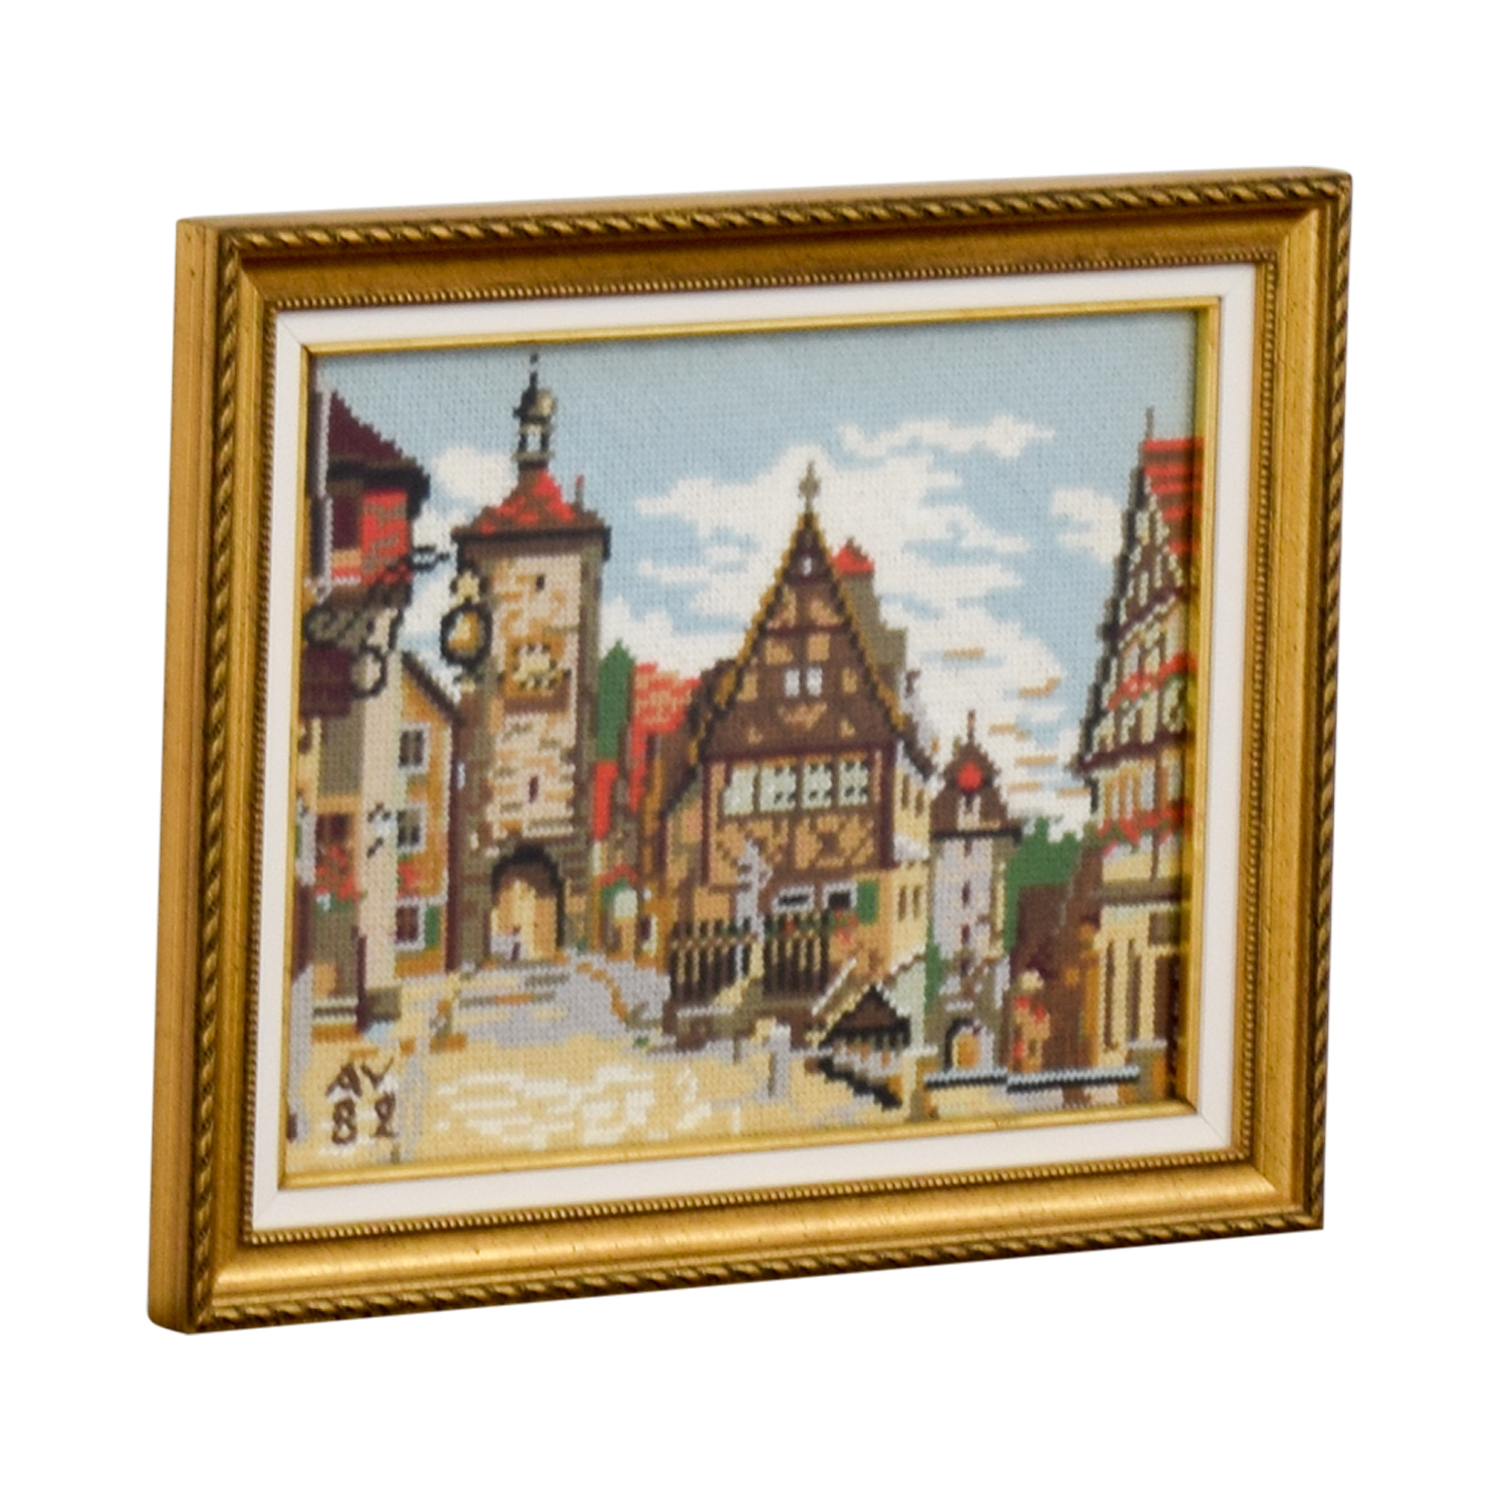 Framed Switzerland Country Village Needlepoint dimensions